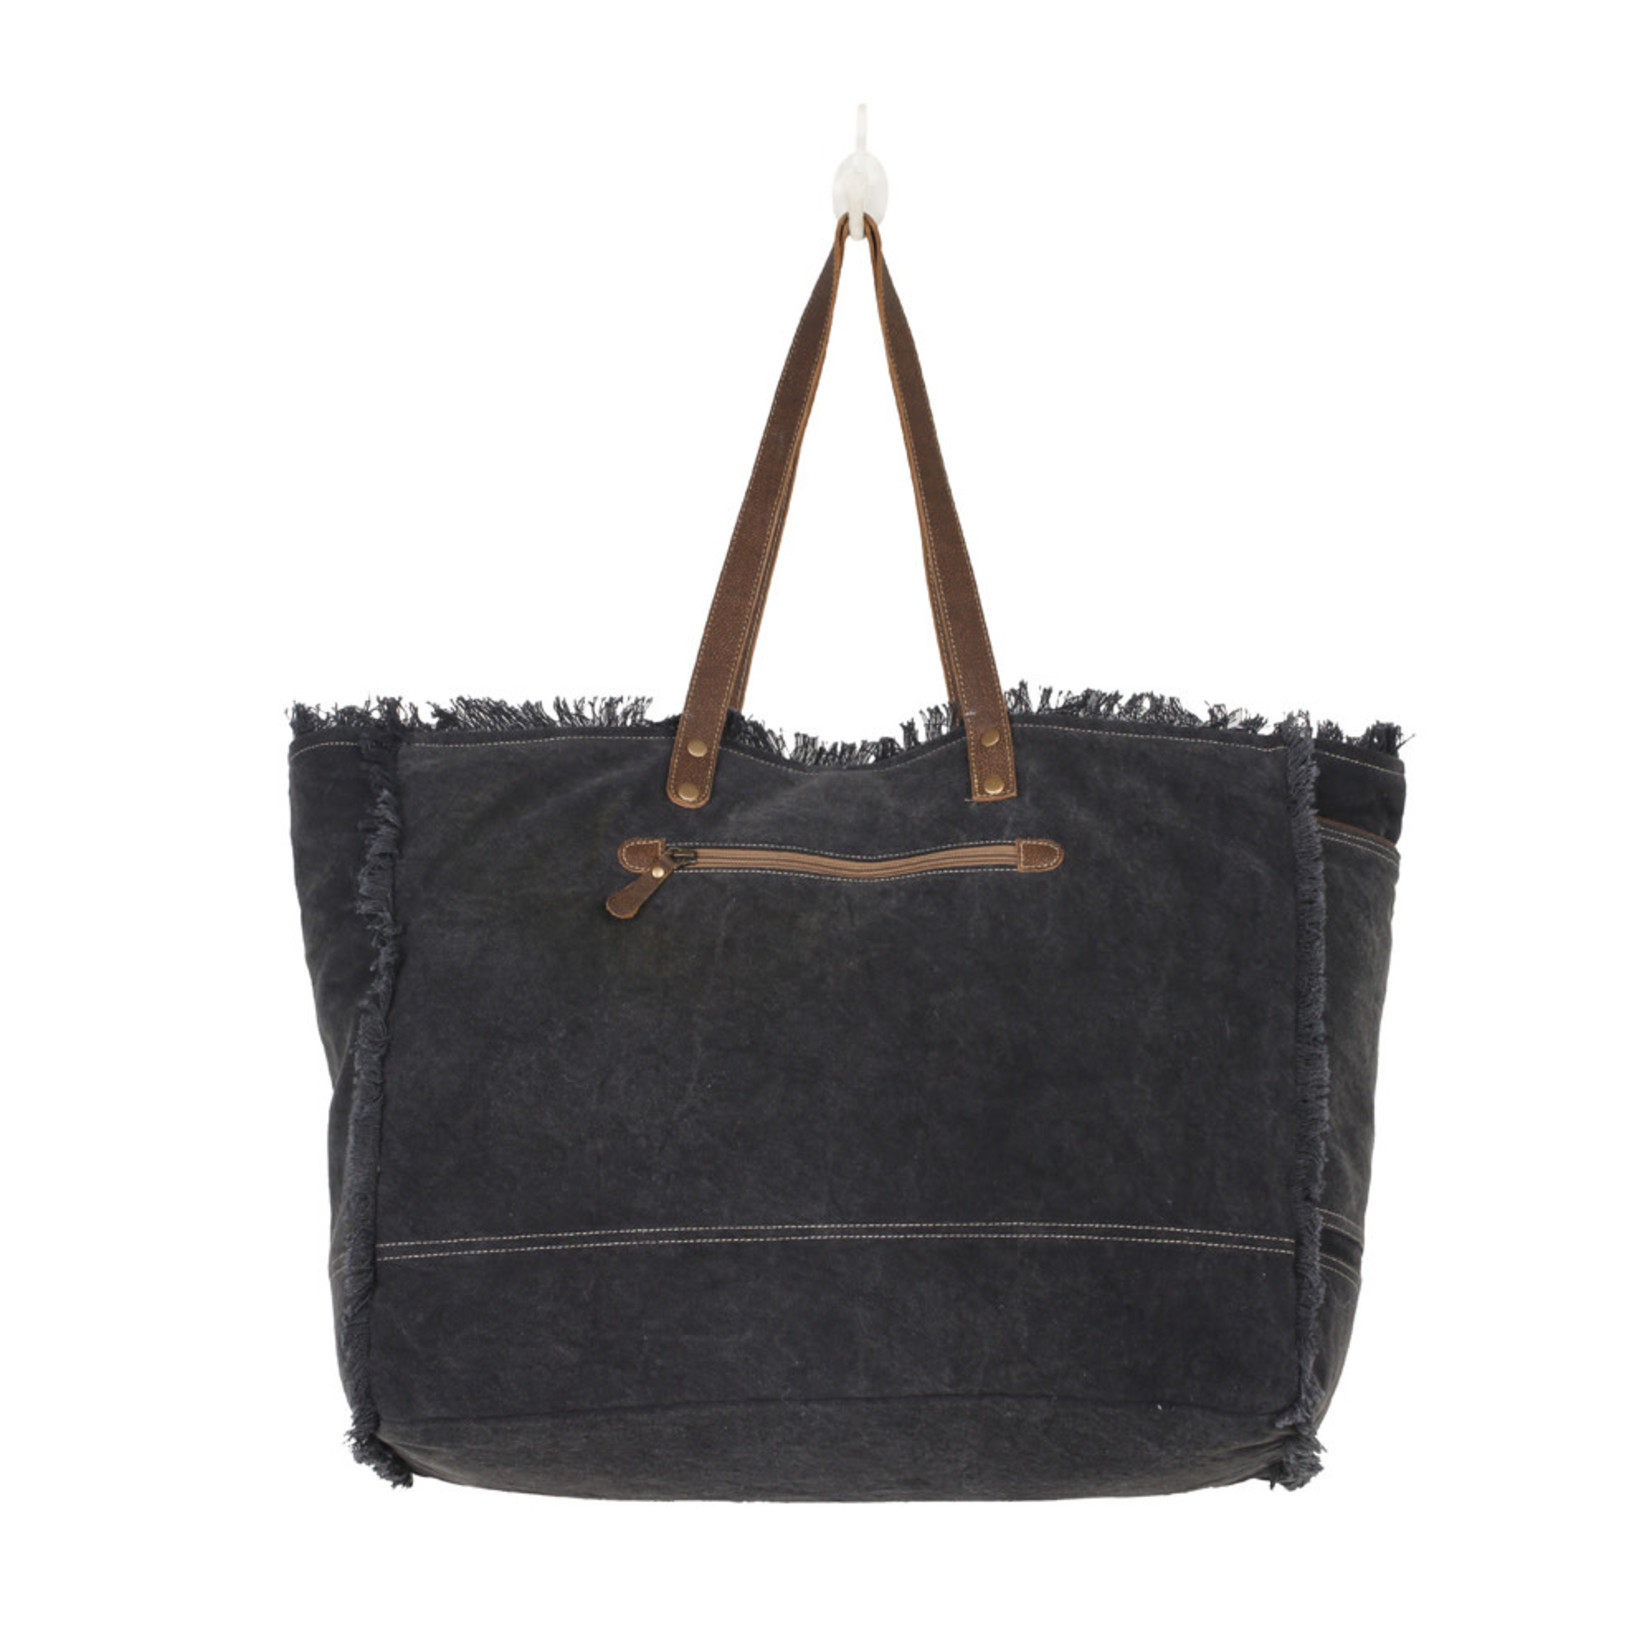 Myra Bags S-2531 Black Fern Weekender Bag